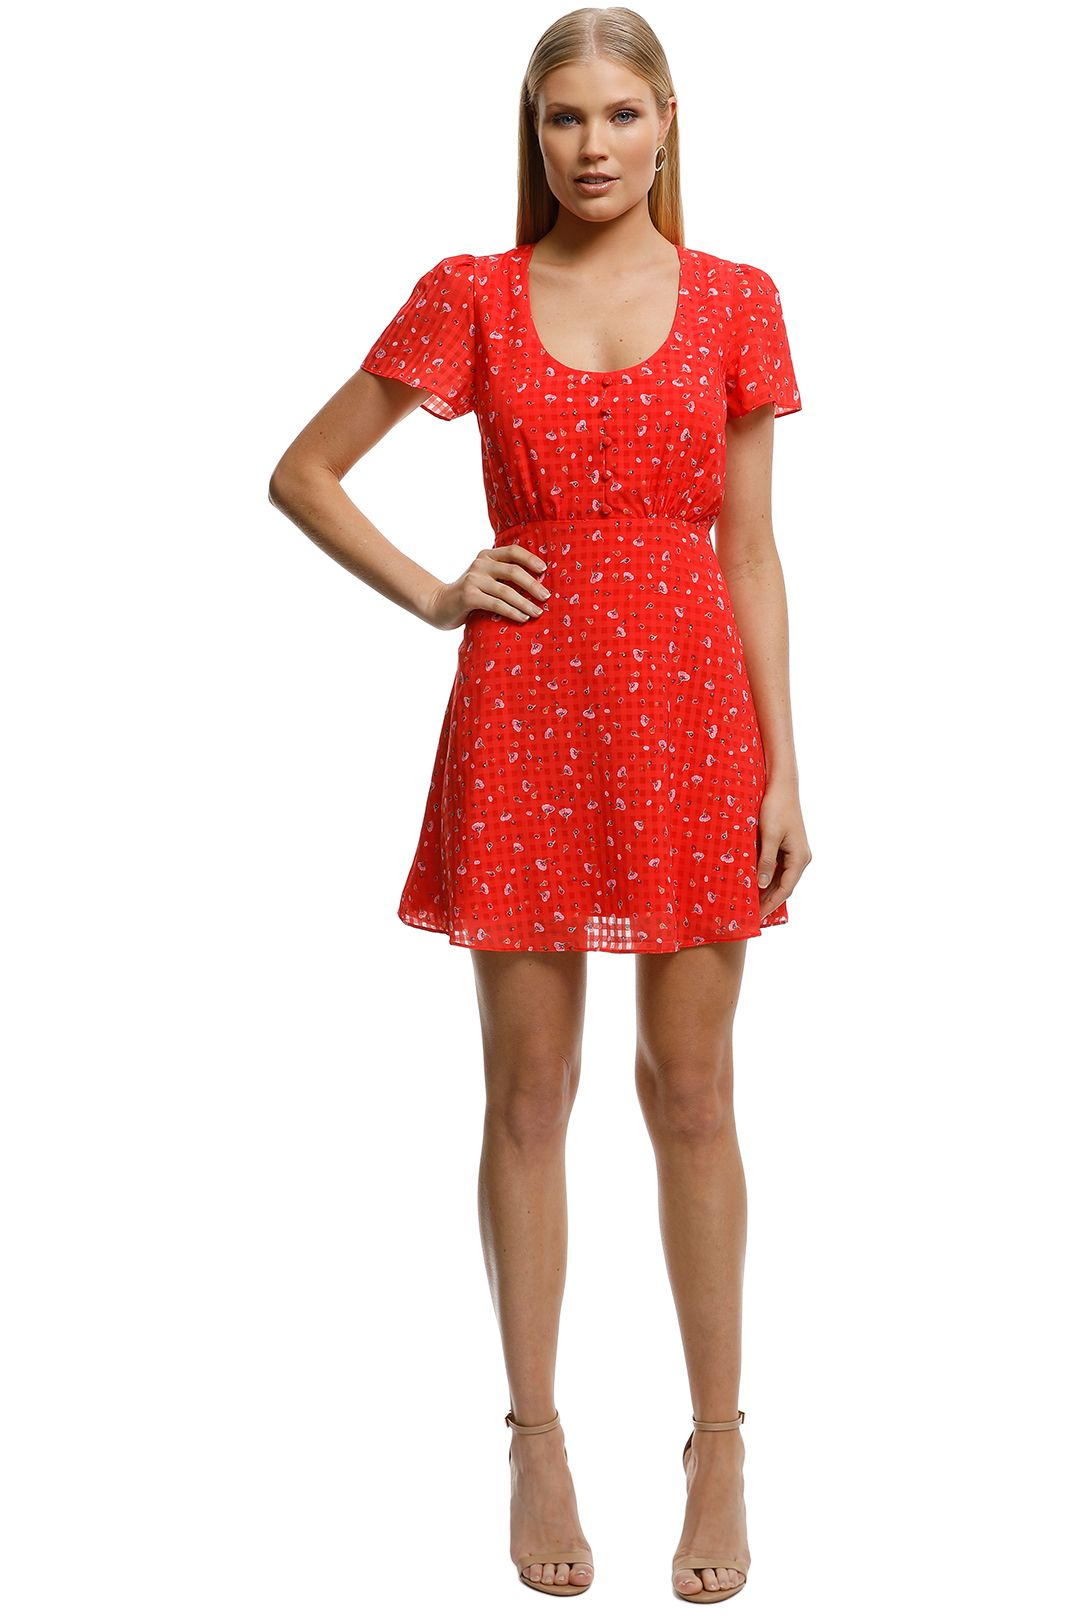 The East Order-Aggy Mini Dress-Orange-Front